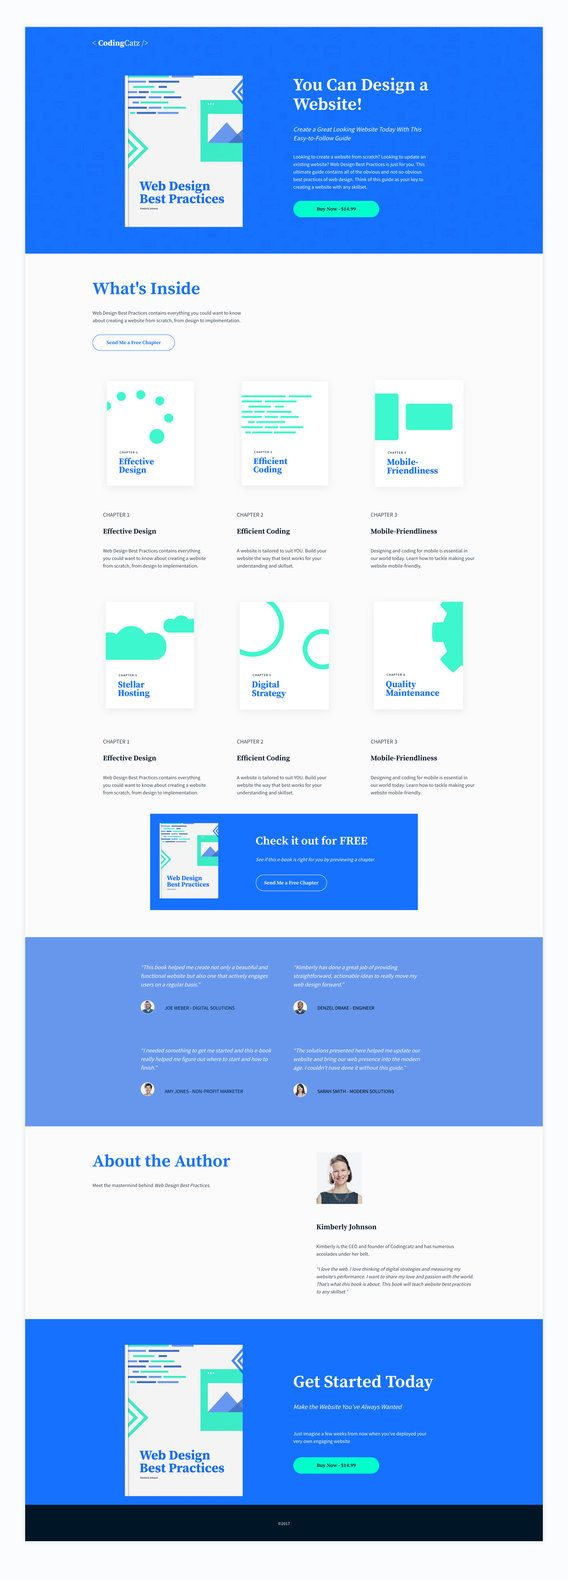 free ebook sales page template from Leadpages